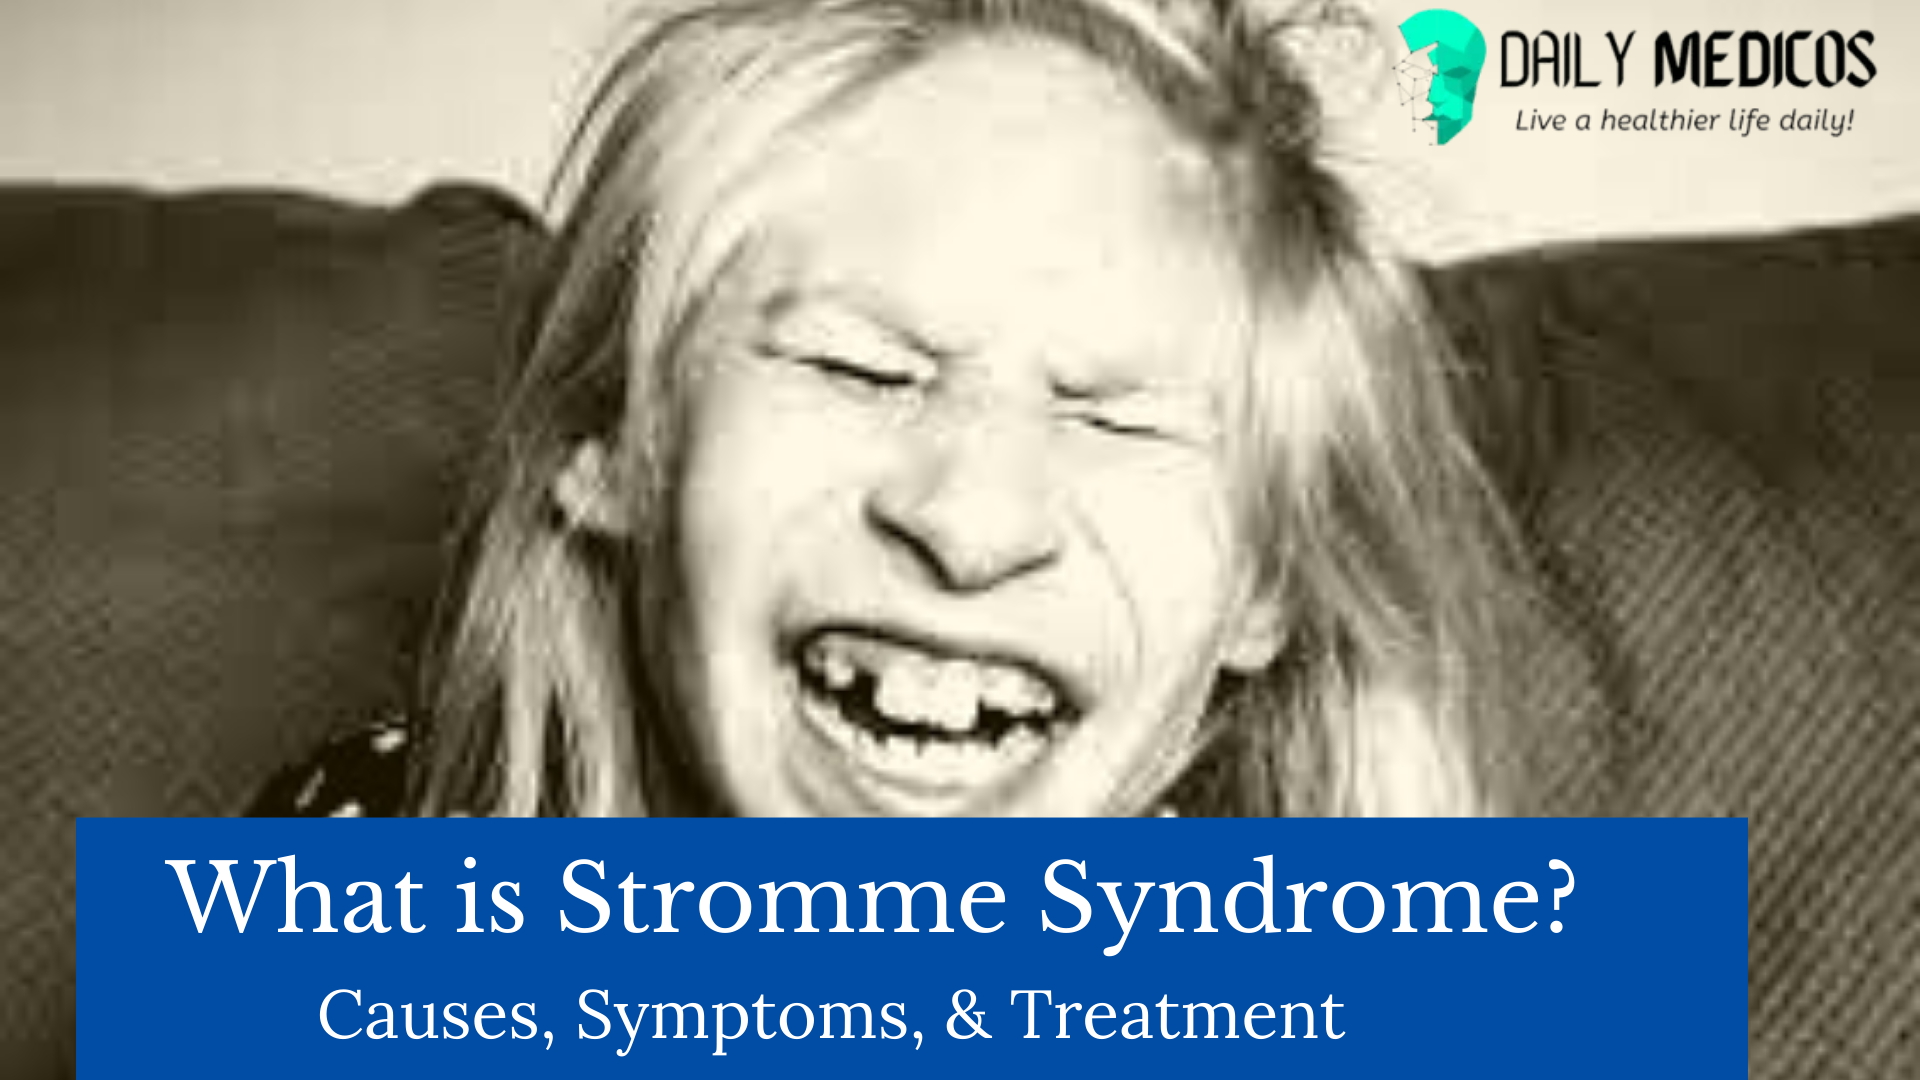 Stromme Syndrome: Causes, Symptoms, & Treatment 1 - Daily Medicos